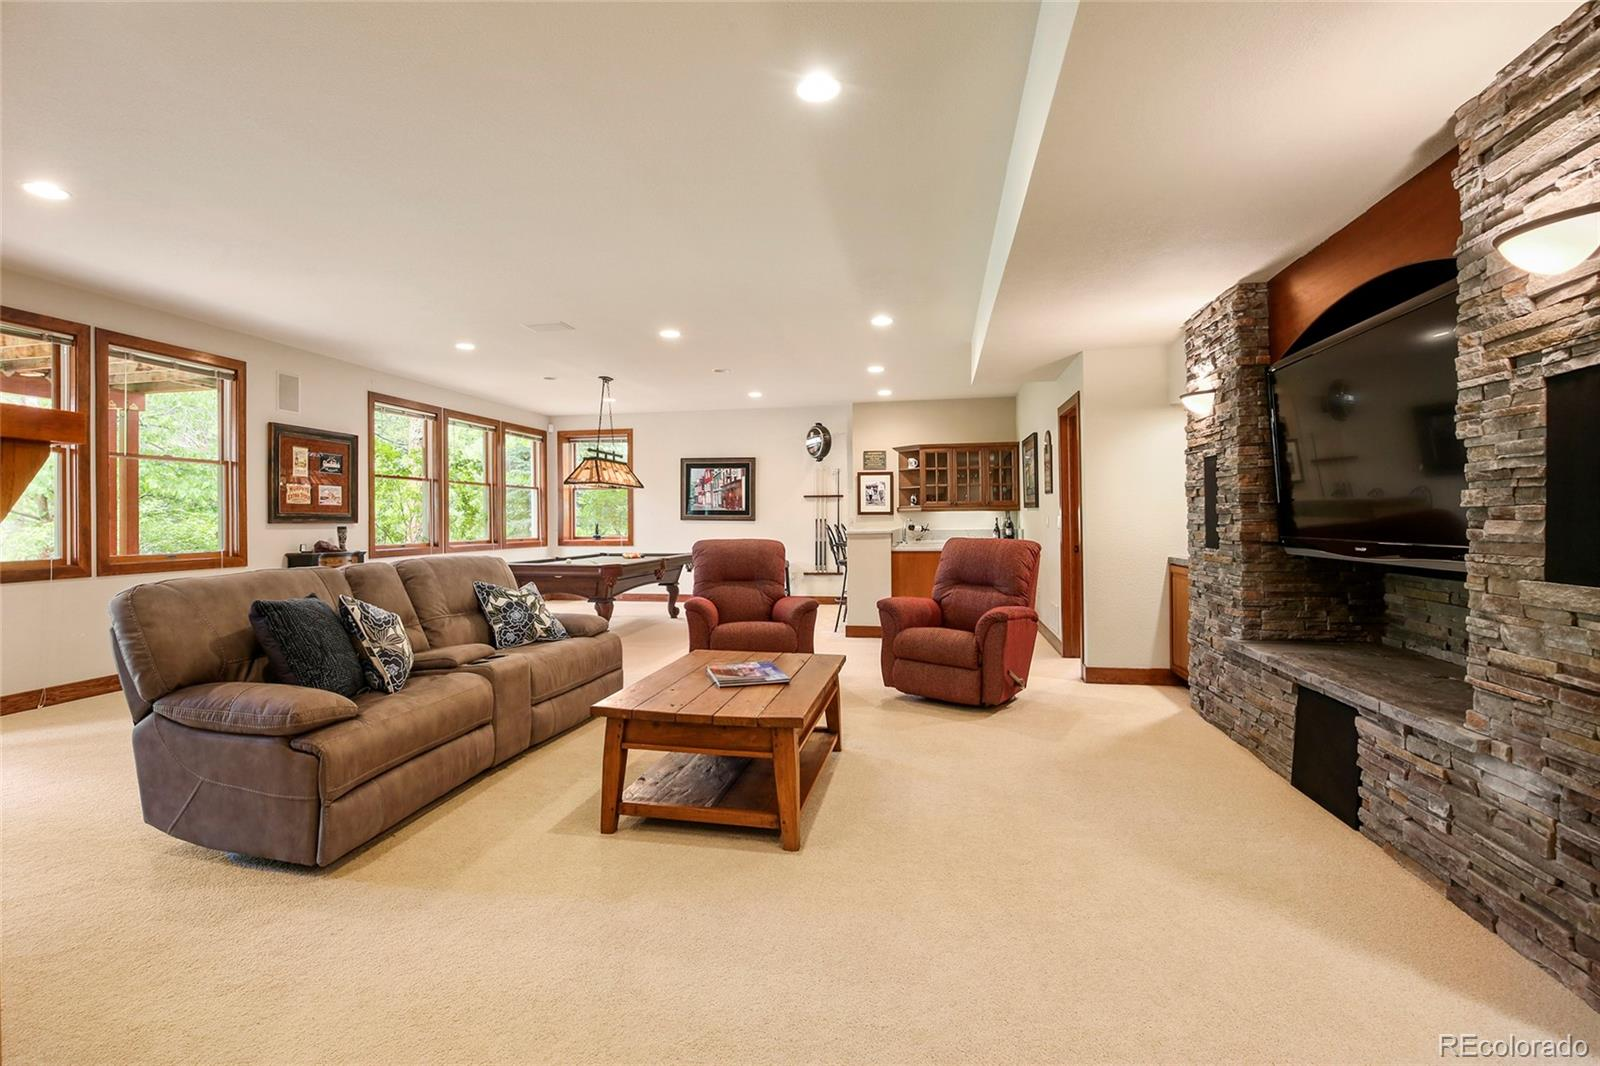 MLS# 8150320 - 24 - 1198 Forest Trails Drive, Castle Pines, CO 80108